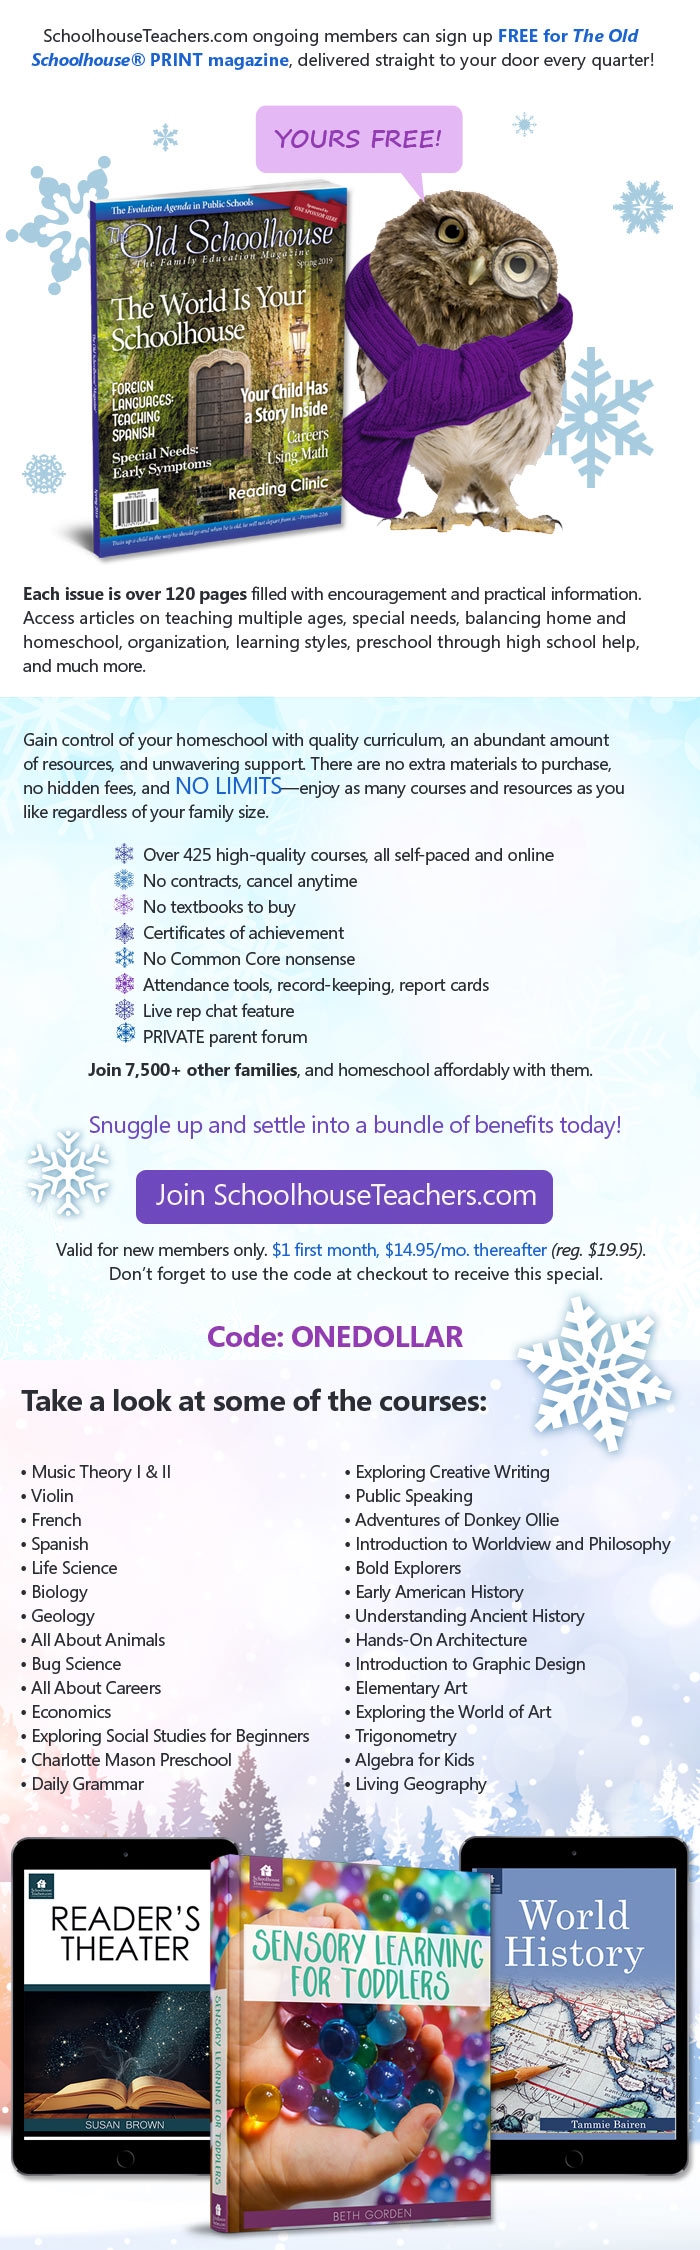 Start homeschooling for just $1 for the first month then $14.95/mo. thereafter. 400+ courses, covers the whole family, dozens of resources.